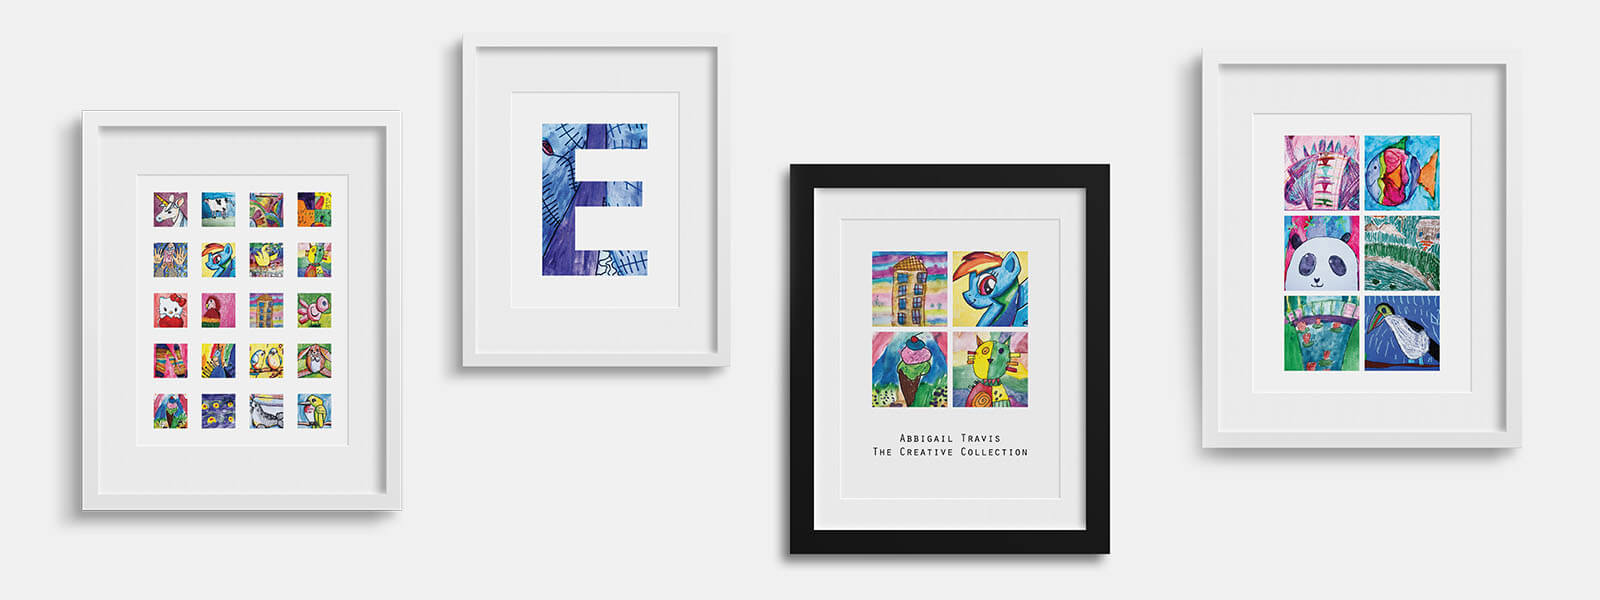 Display kids art as a poster print and hang in kids room, playrooms, living rooms as kids wall decor